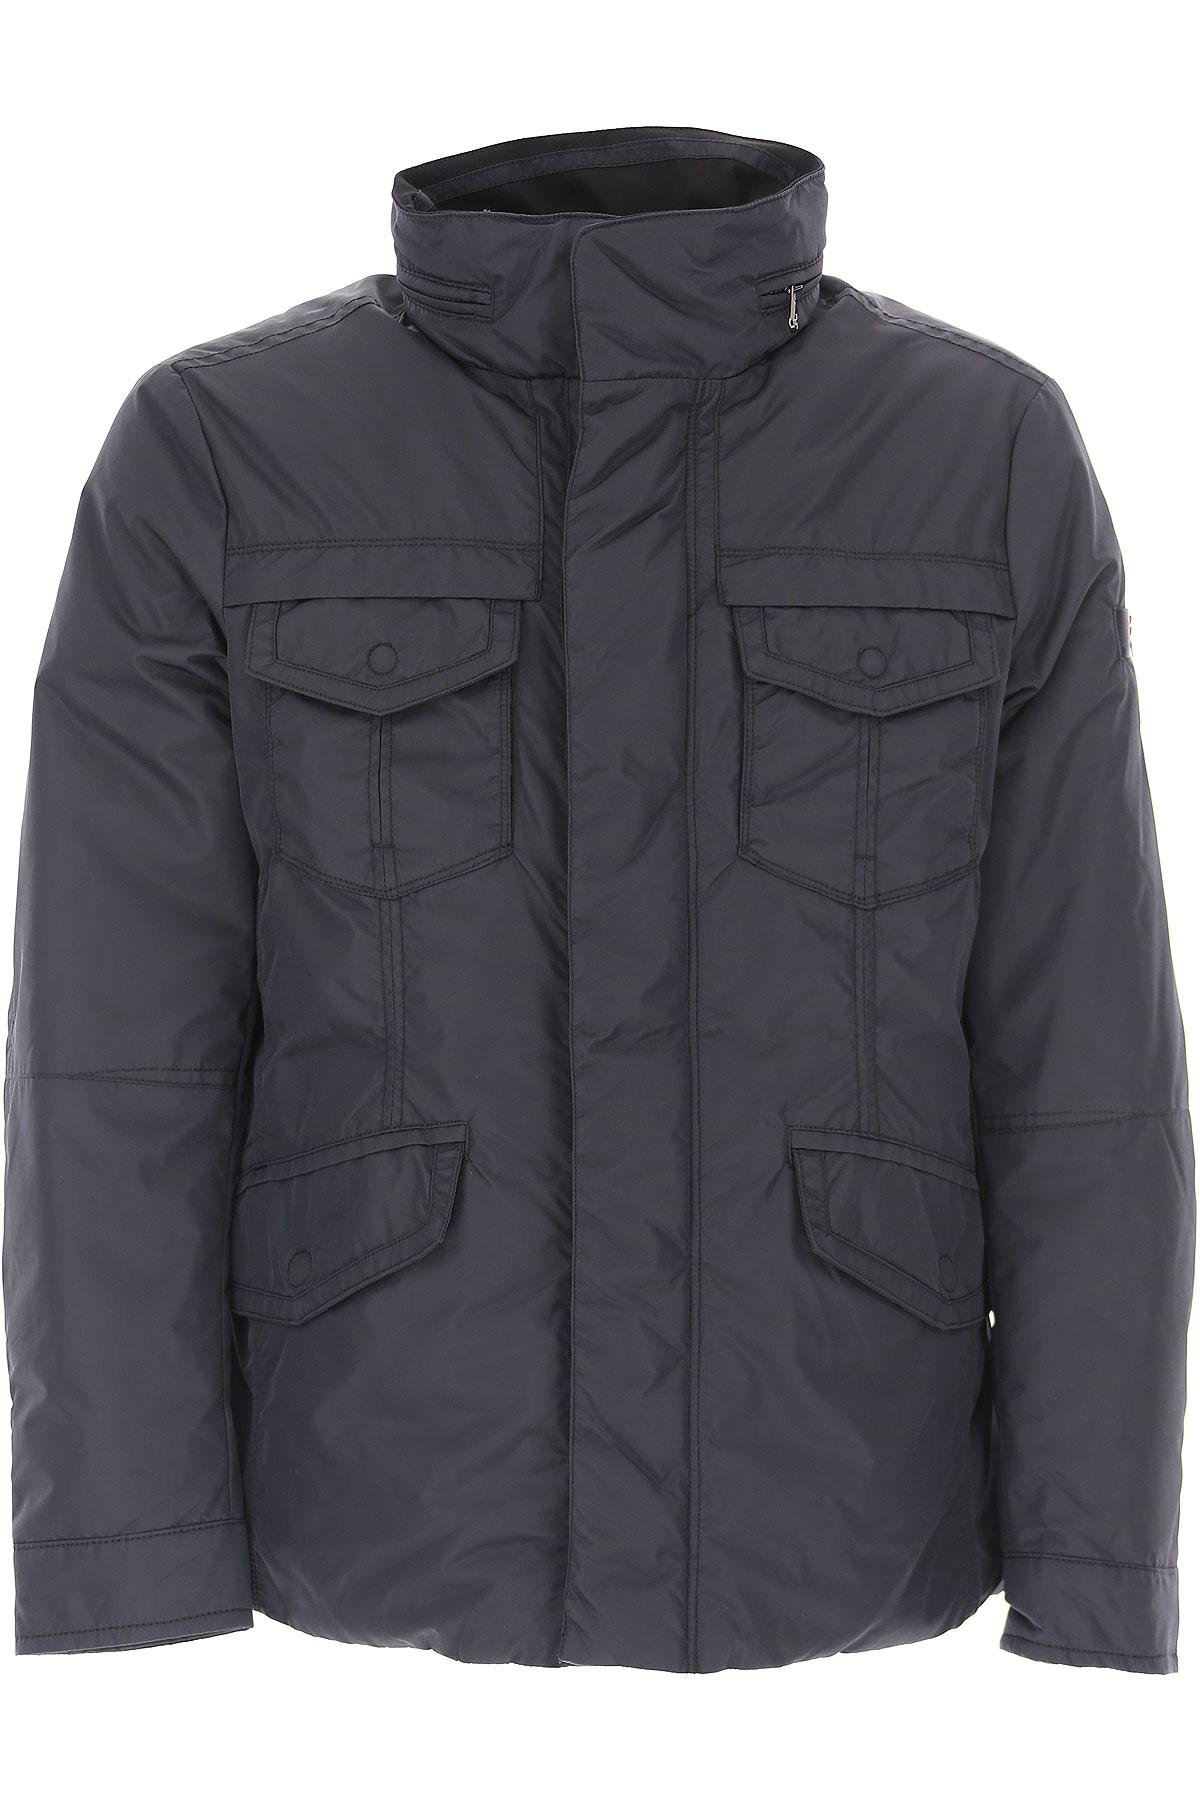 new products 2e3cb 41932 Blue Jacket For Men On Sale In Outlet